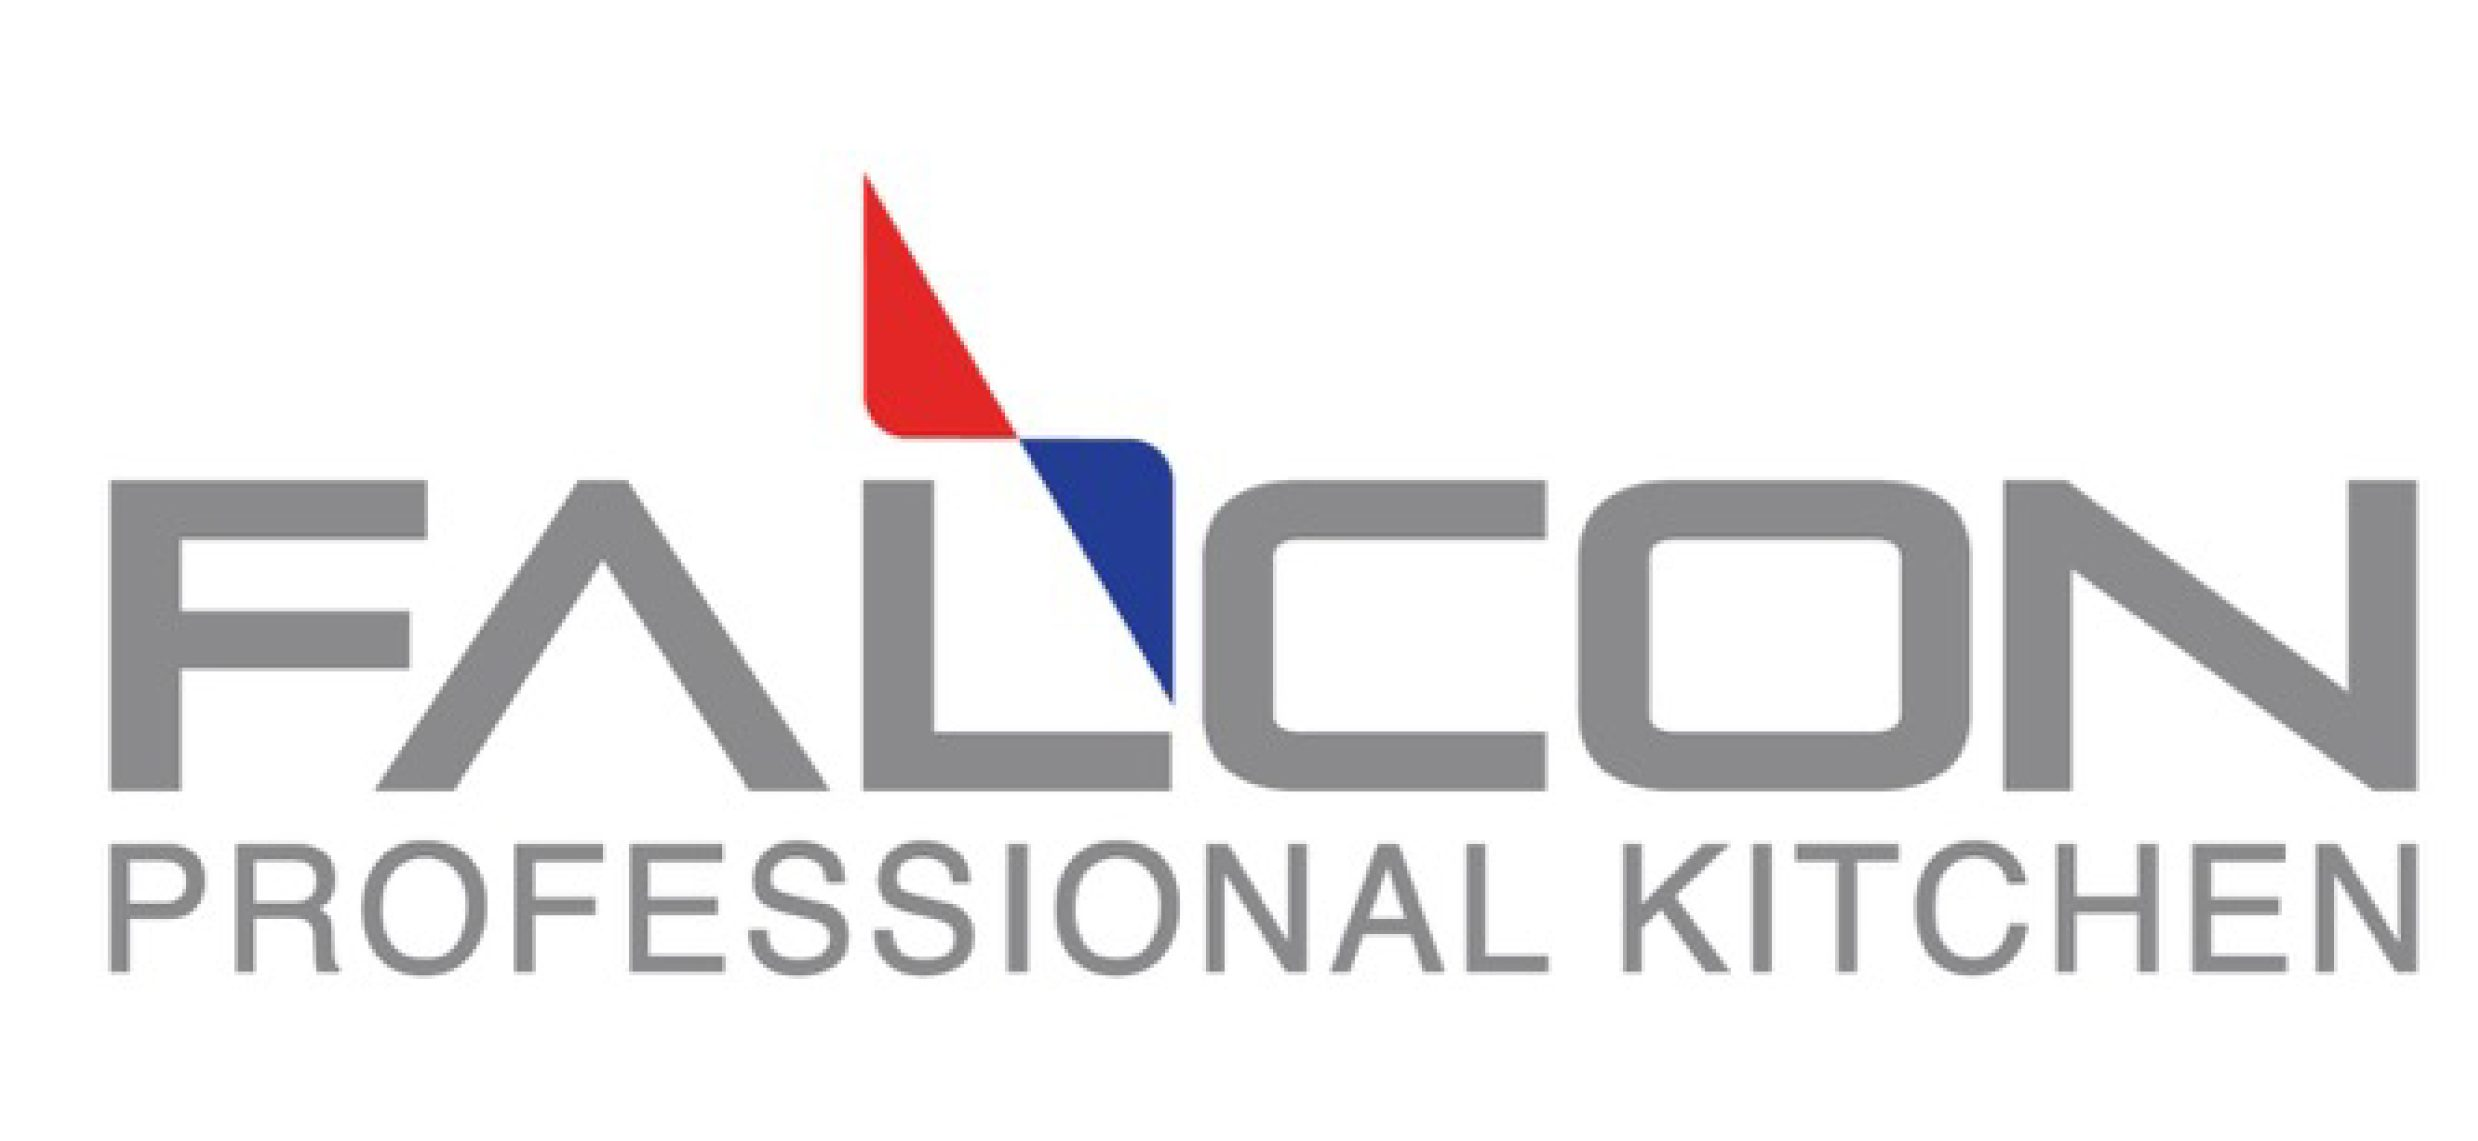 Falcon Professional Kitchen